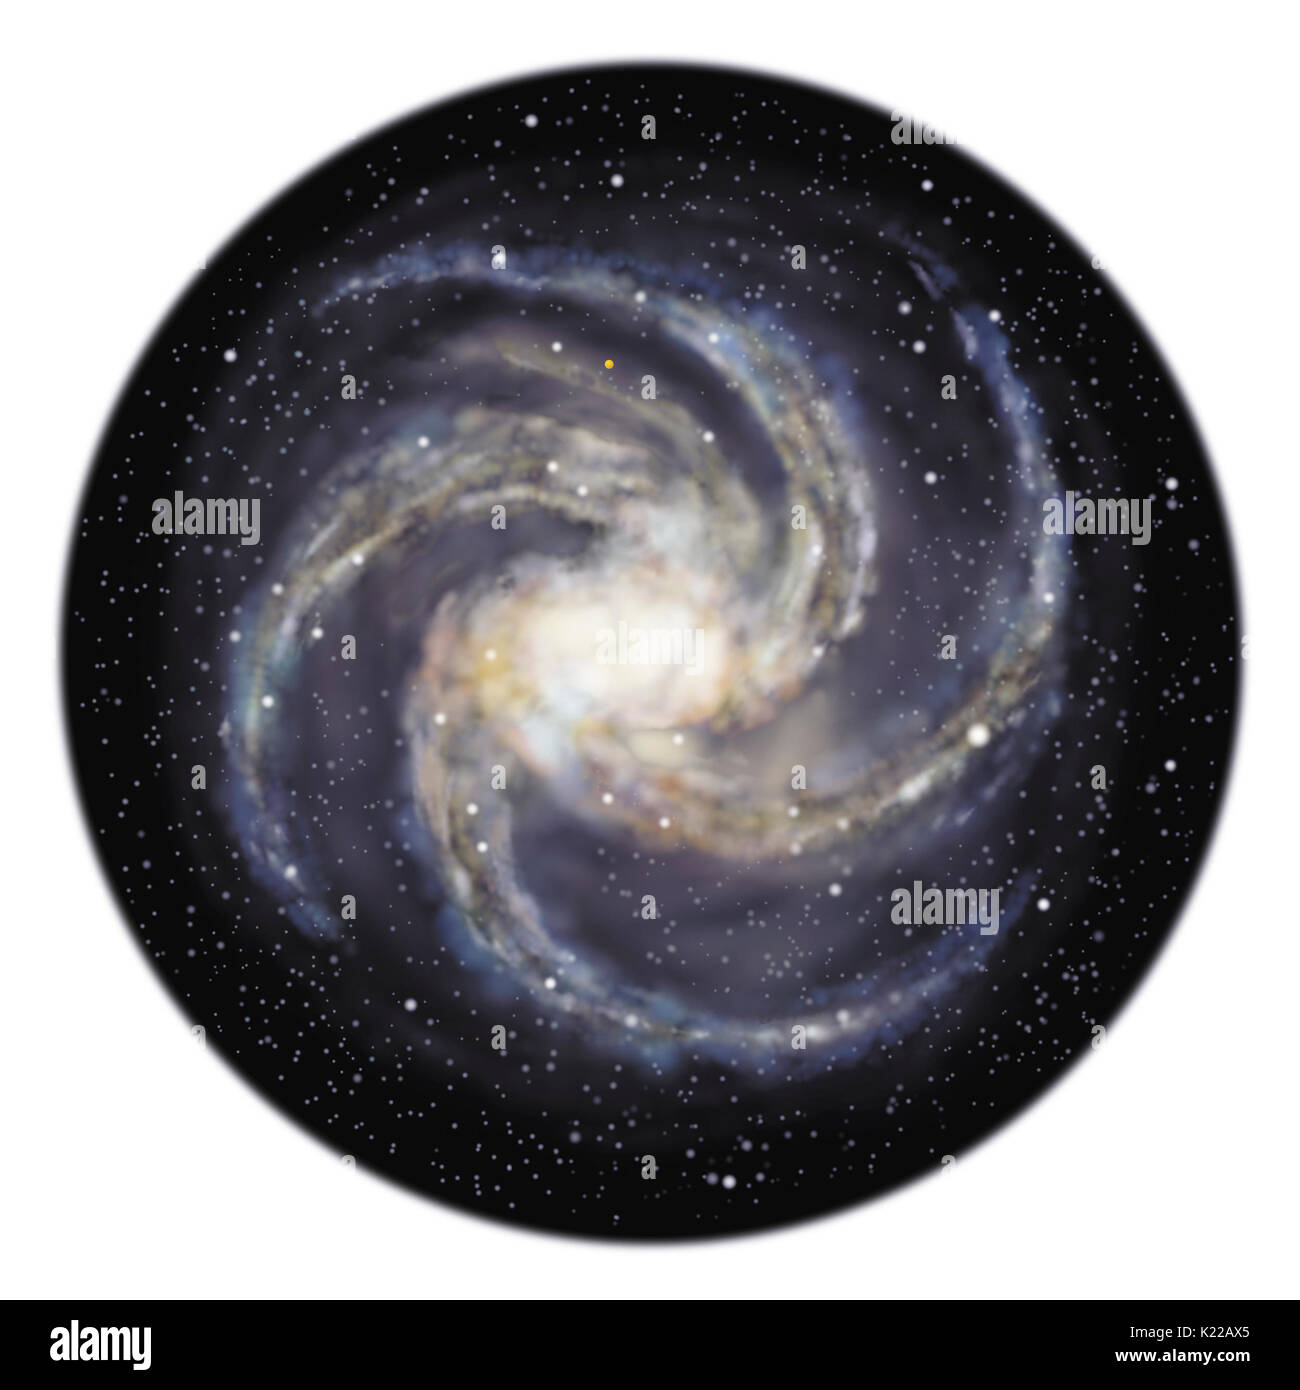 From above, the Milky Way appears as a spiral that rotates on itself around a nucleus. - Stock Image